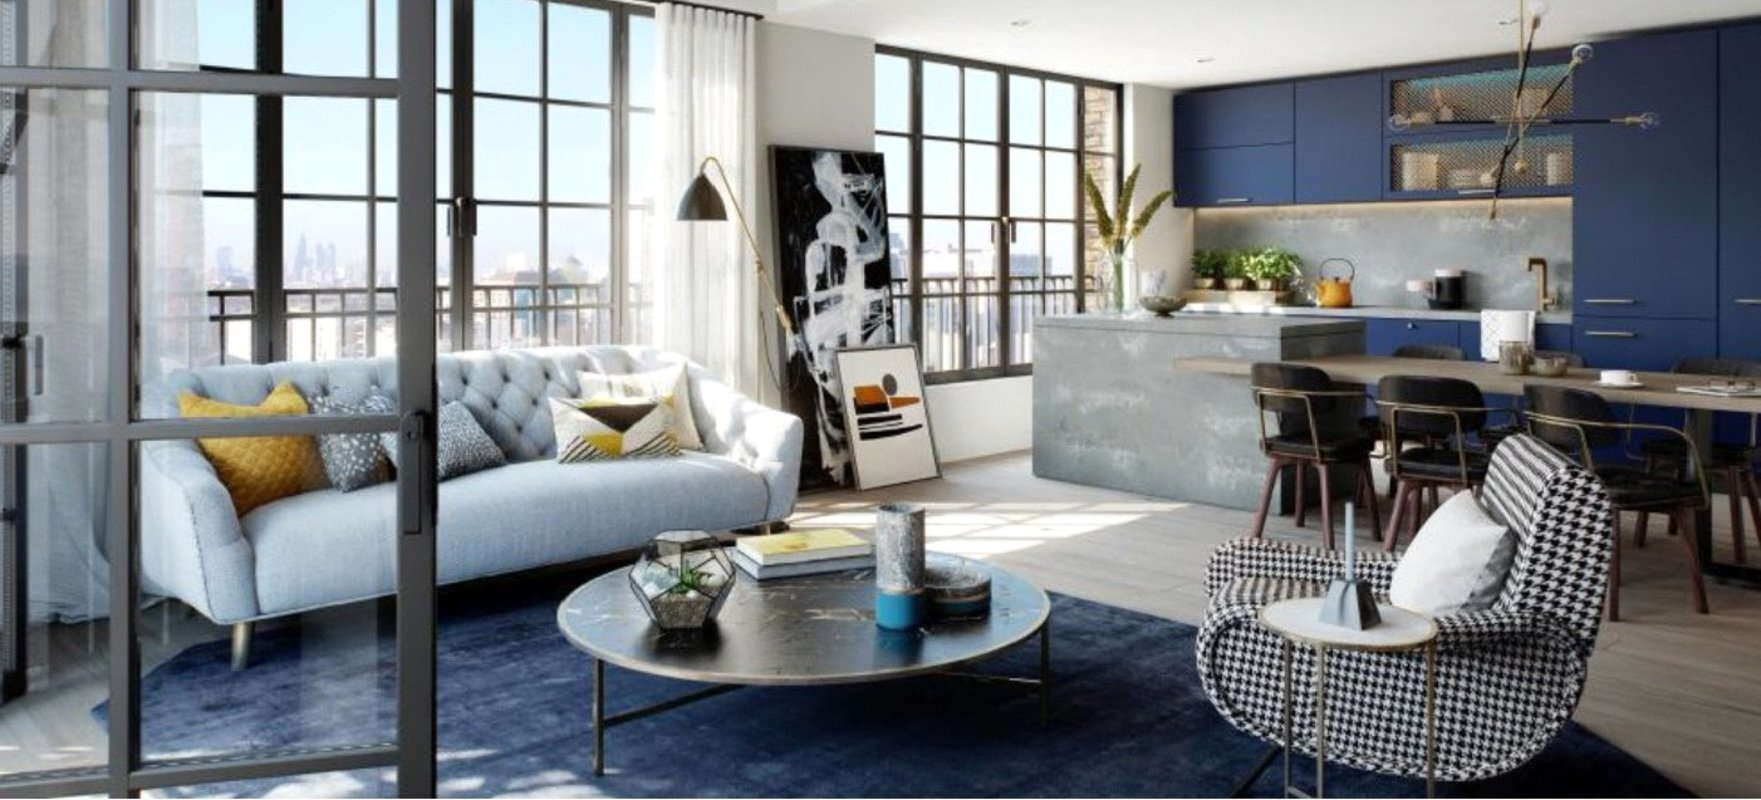 Apartment-for-sale--london-1753-view2